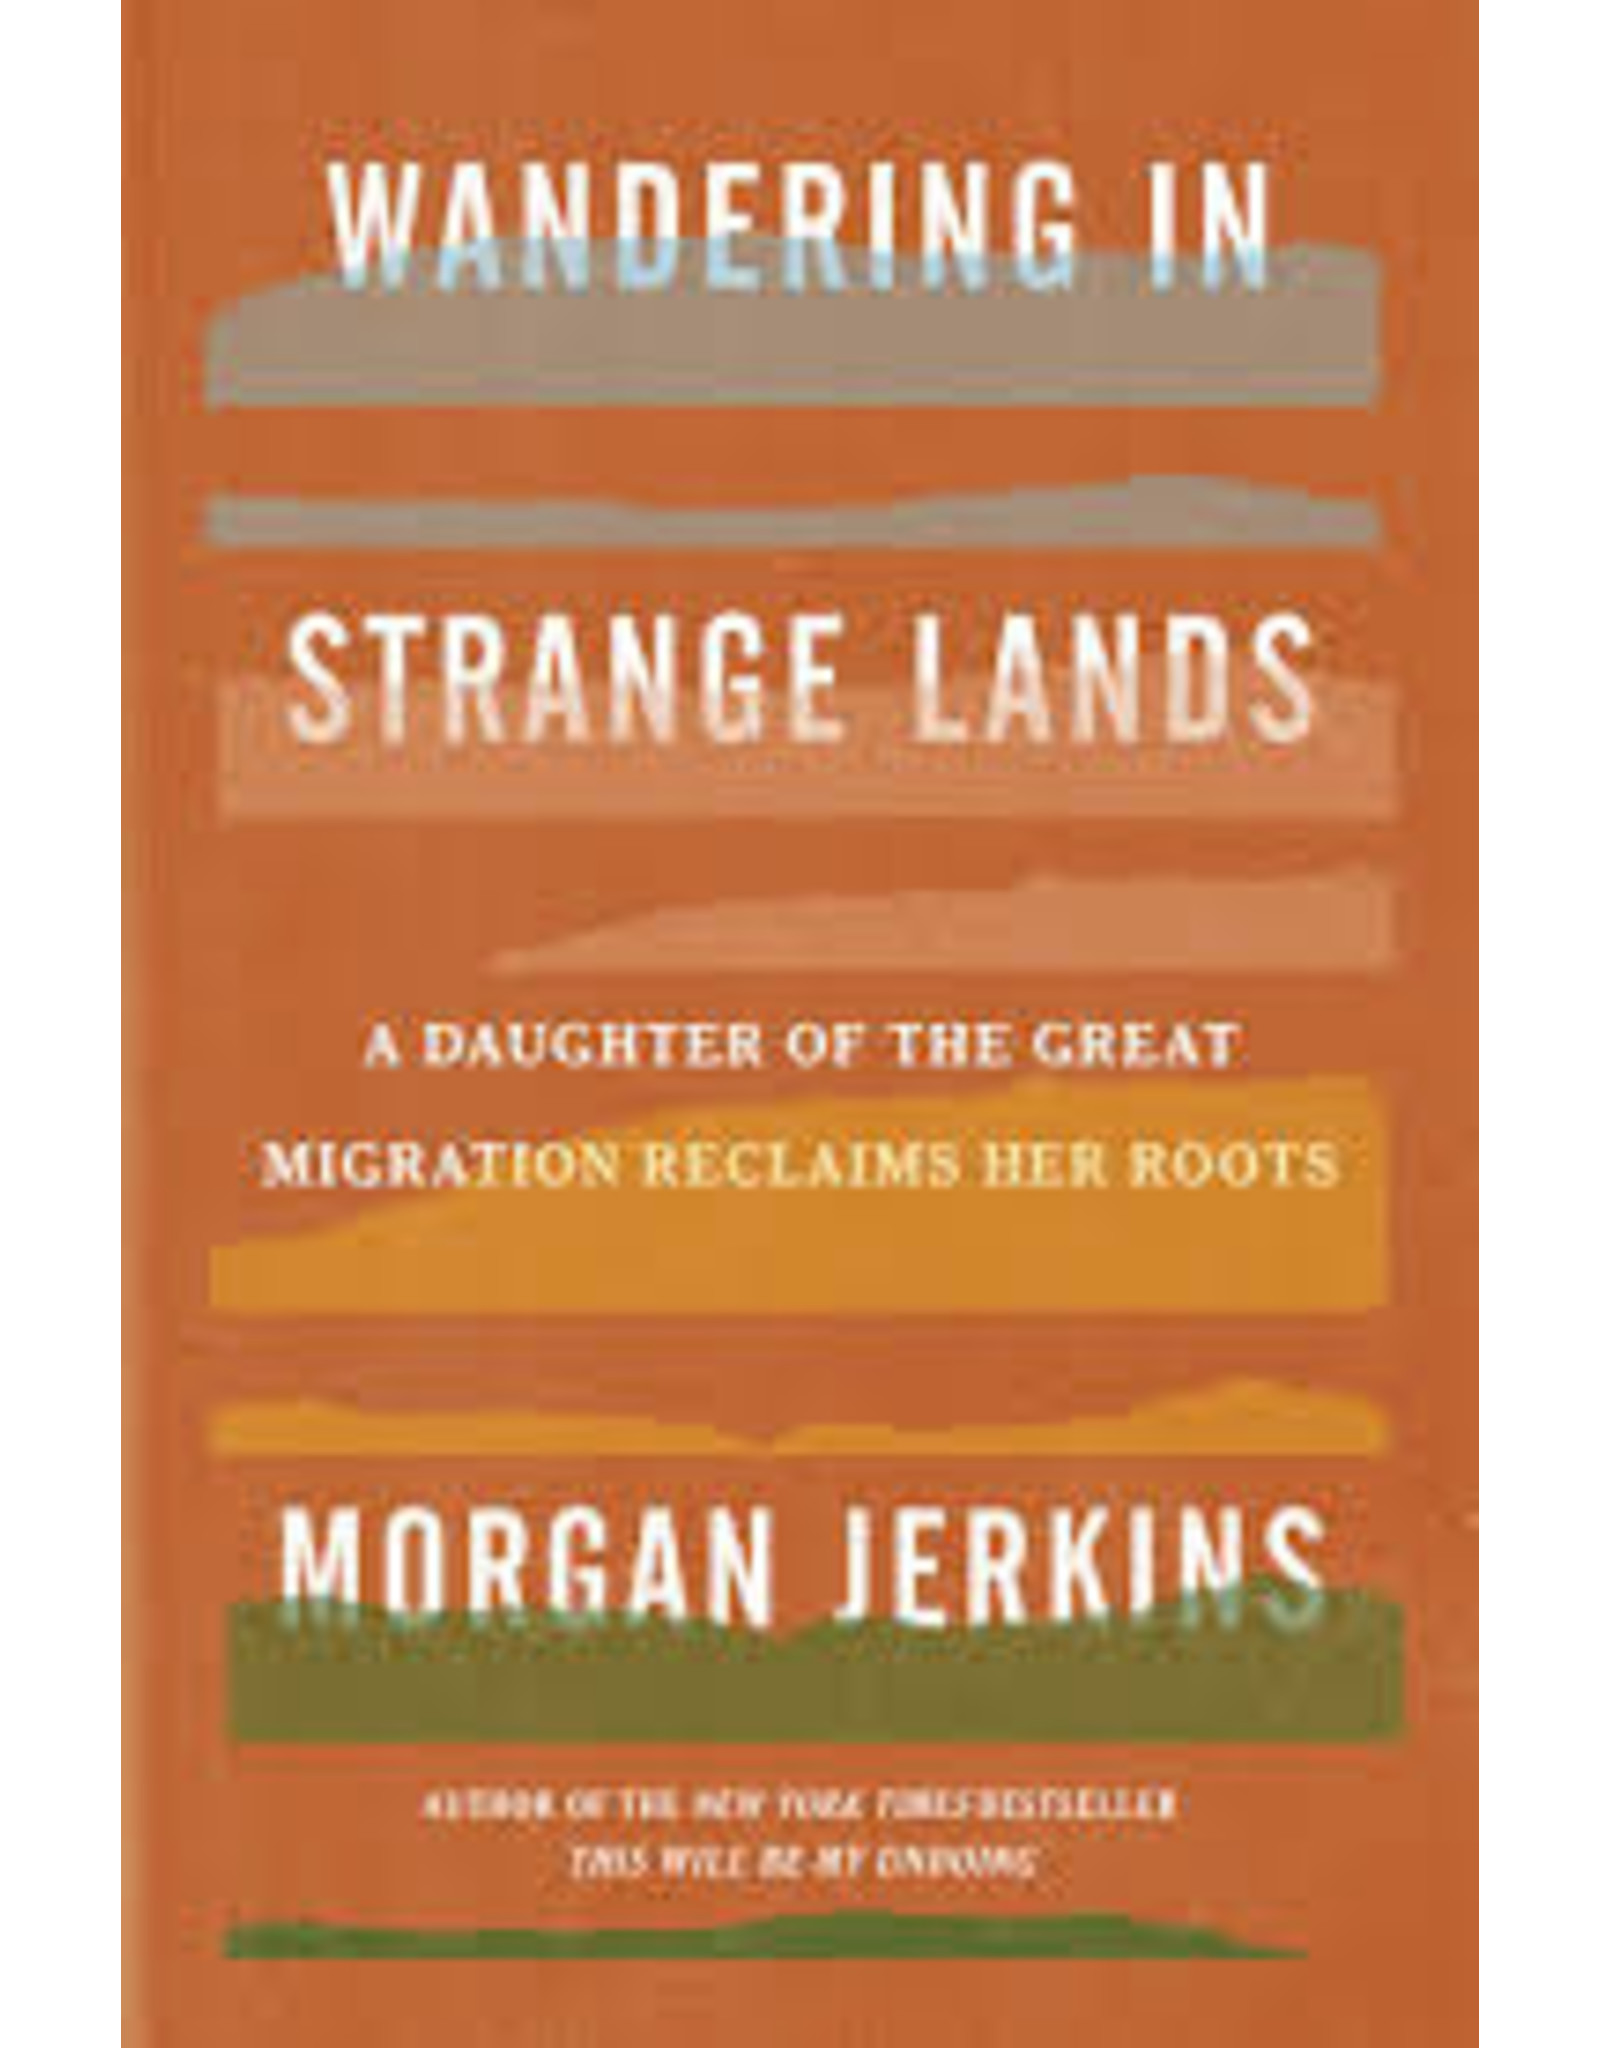 Books Wandering in Strange Lands: A Daughter of the Great Migration Reclaims Her Roots by Morgan Jerkins